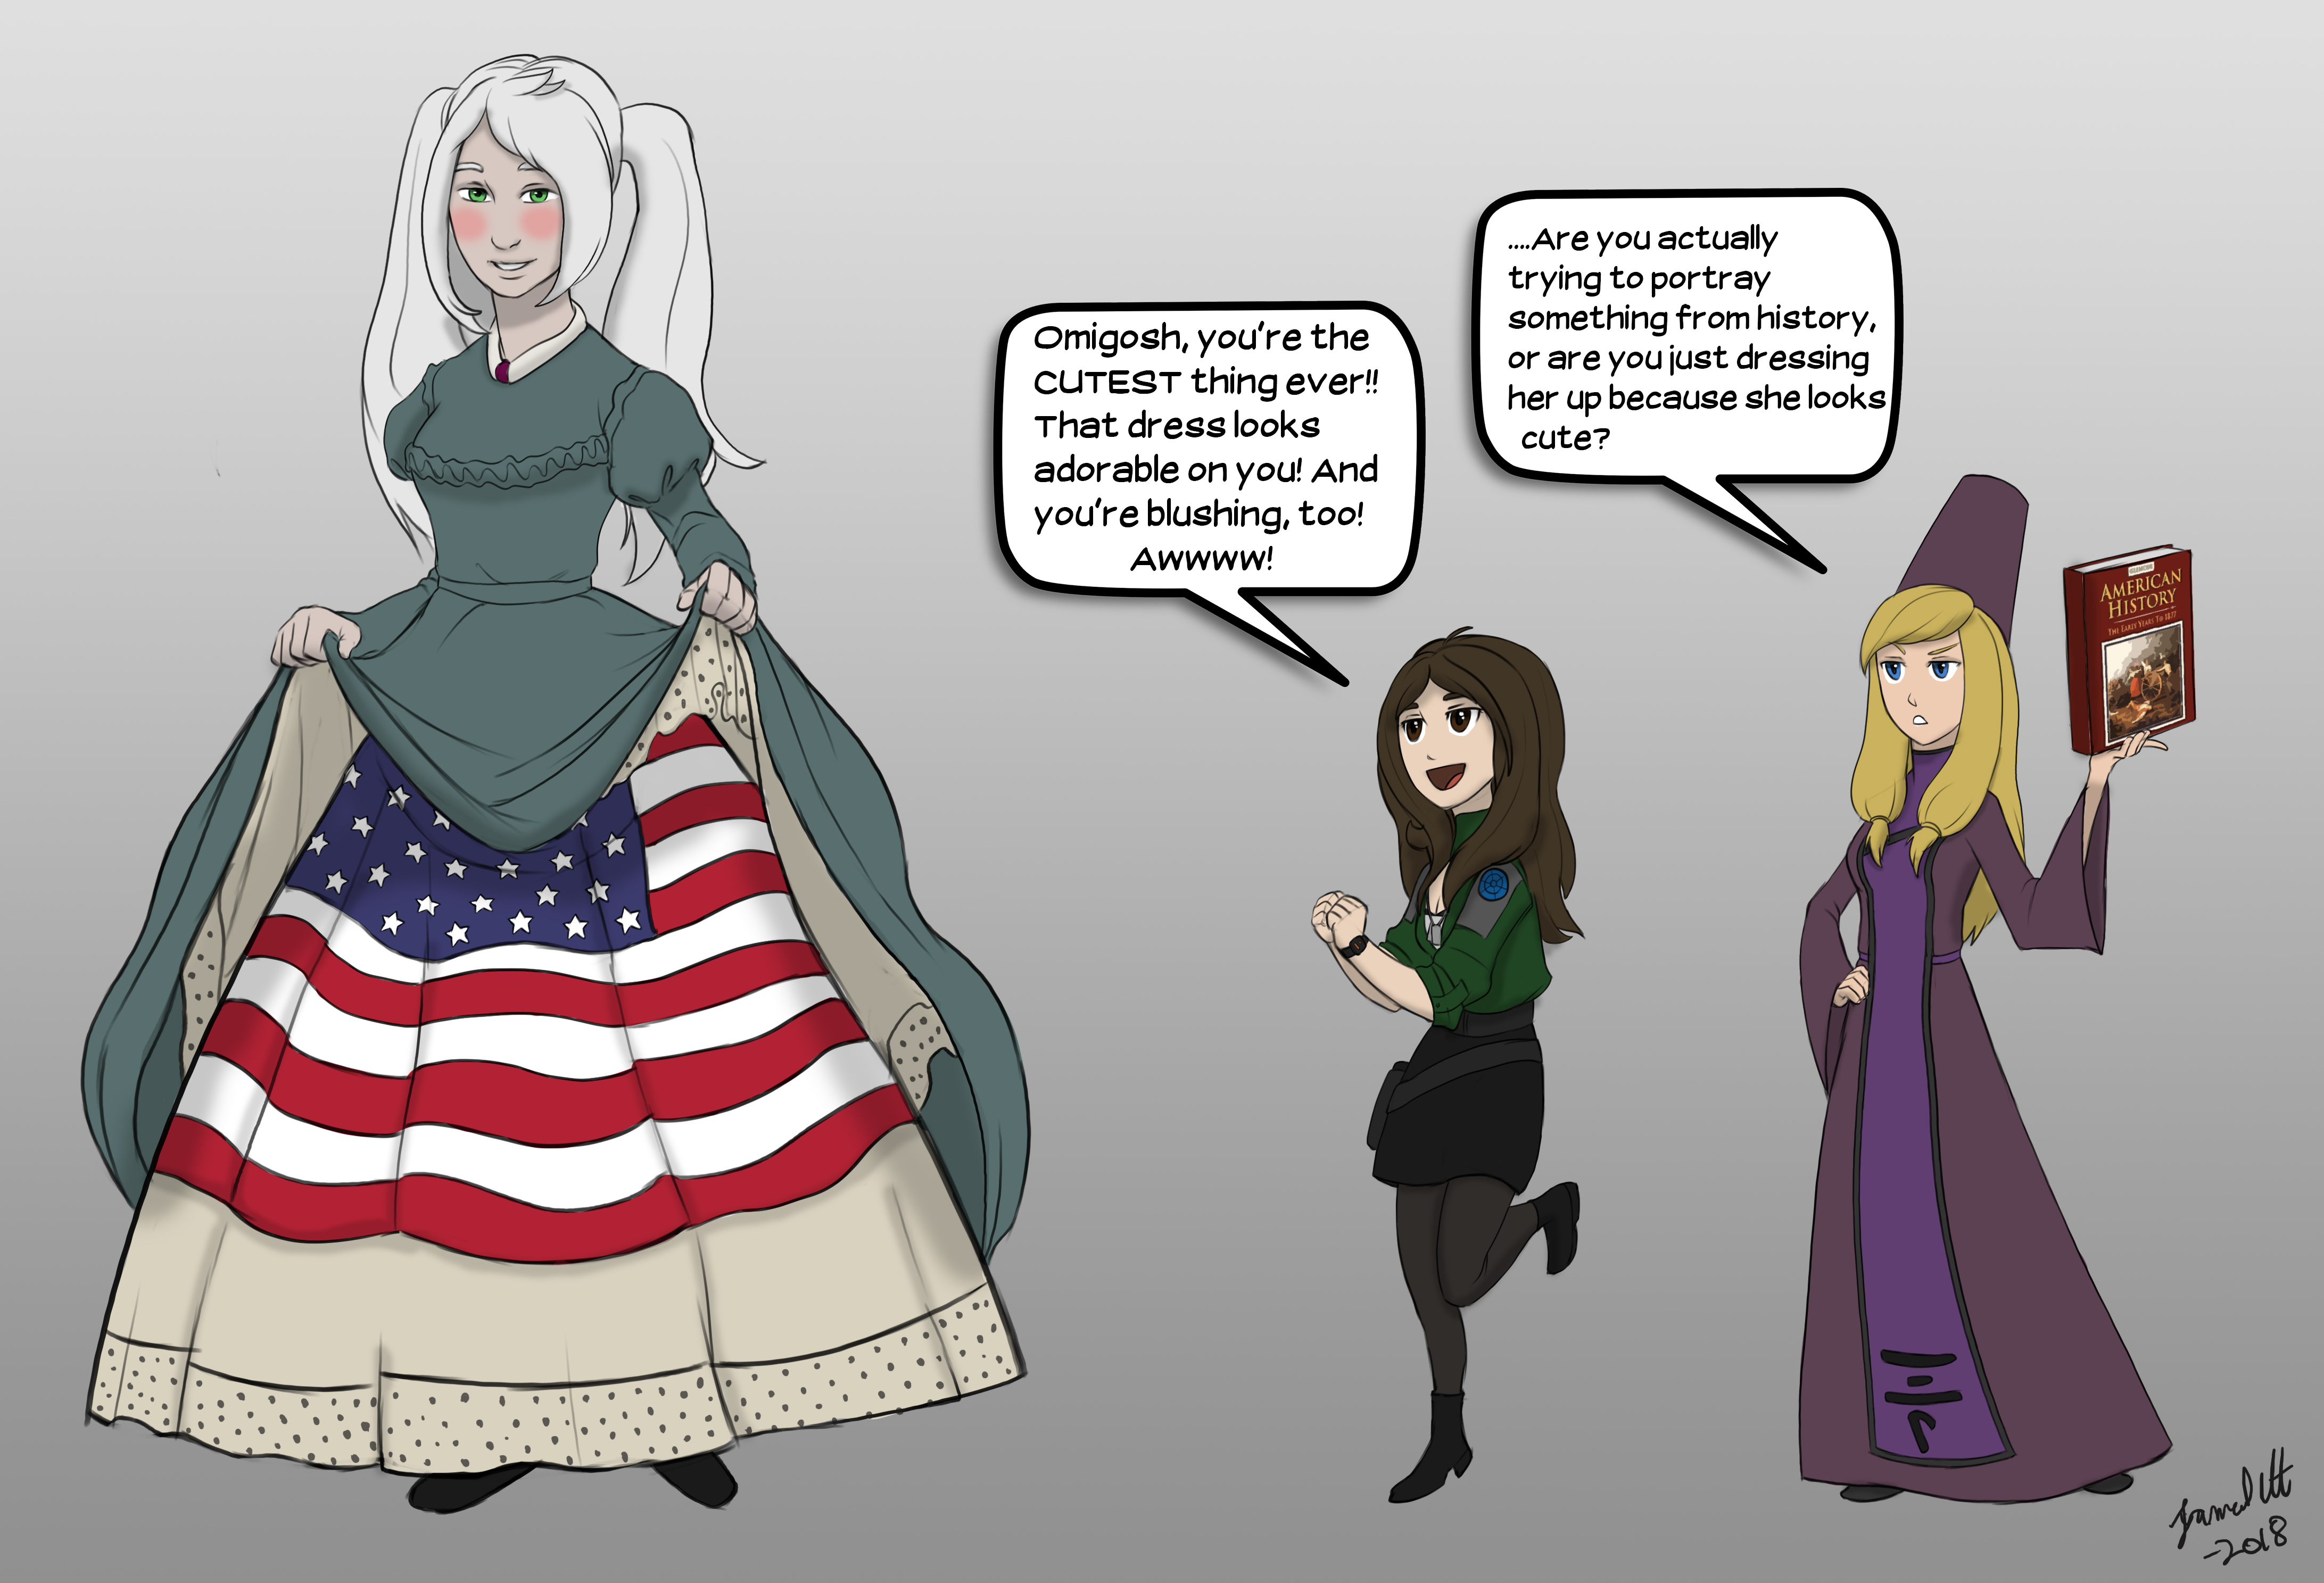 Part of the starship crew Dawnstar, involved in the historical reenactment of the petticoat flag. Novia is lifiting her dress and petticoats to show the Union flag beneath. Crewmembers Yorina and Haley are off to the side, making remarks on her outfit.